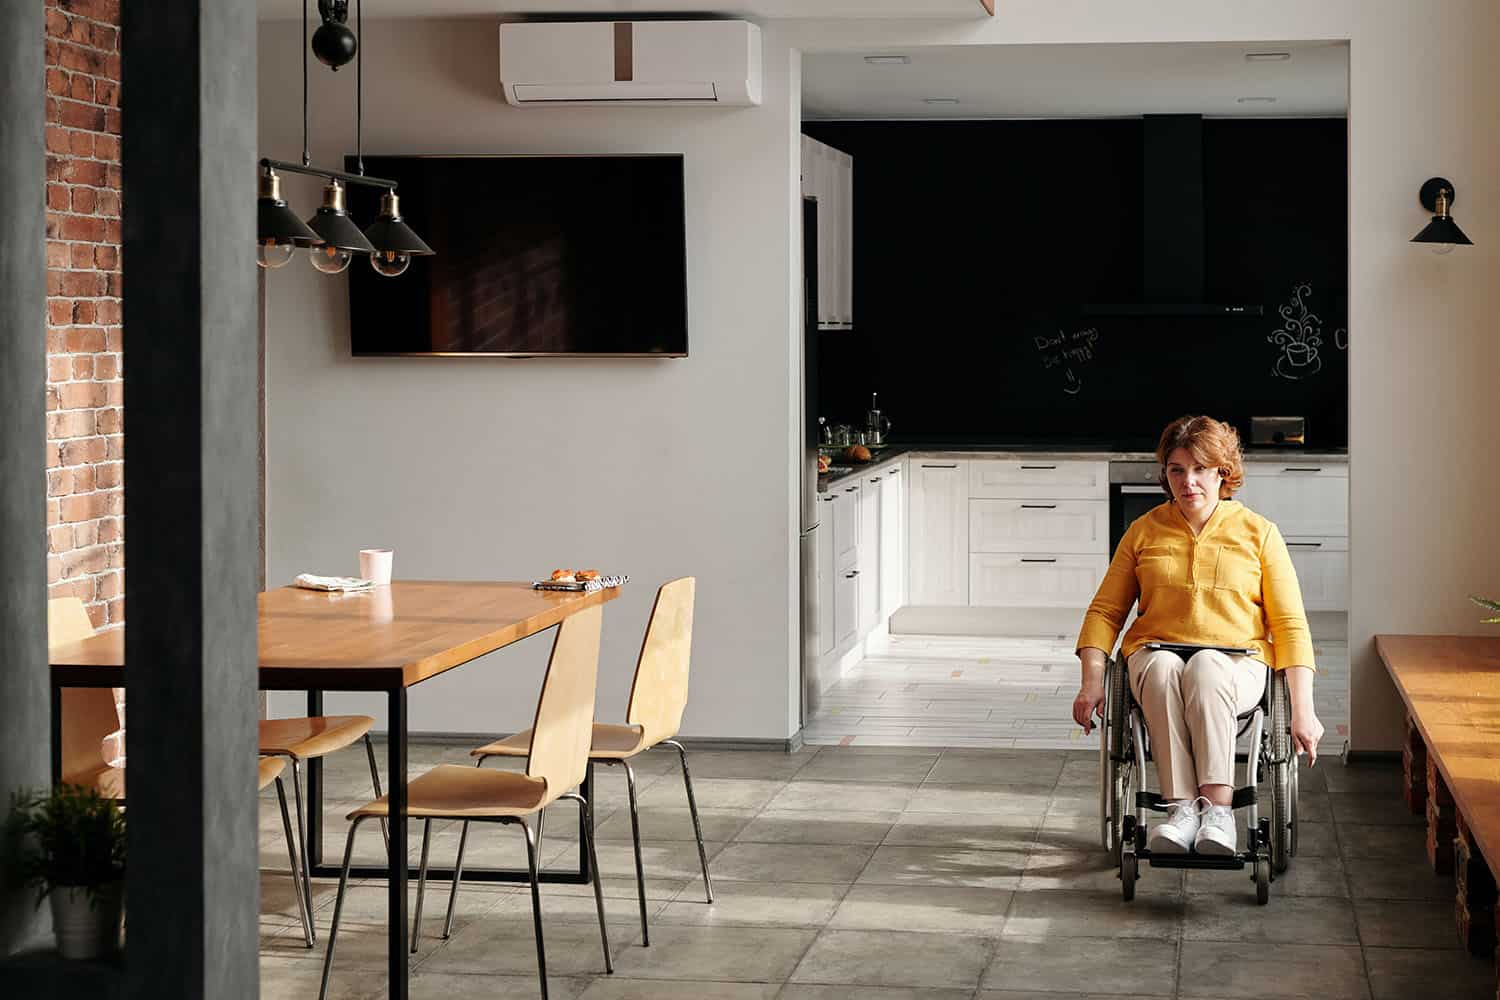 Alchemy Consulting is an accredited specialist disability accommodation